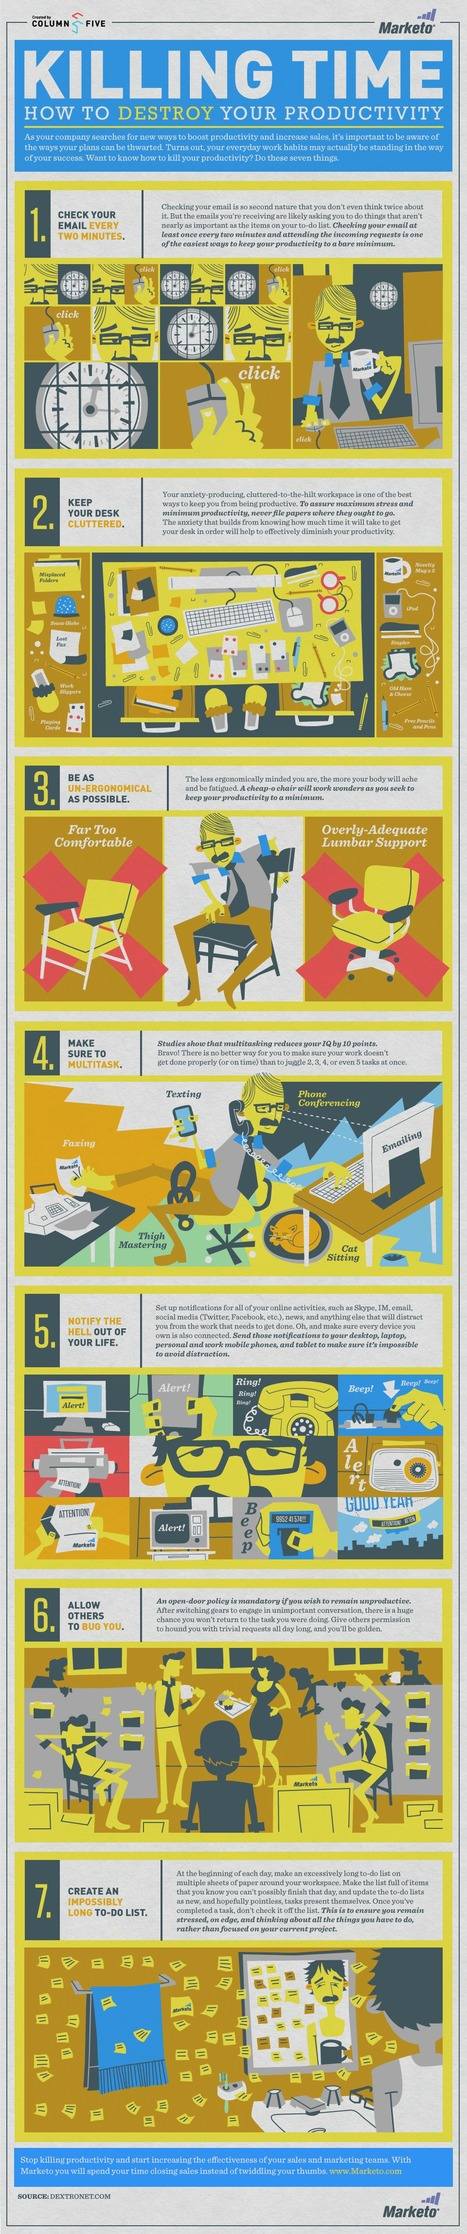 Killing Time: How to Destroy Your Productivity [Infographic] | Team Success : Global Leadership Coaching Tips and Free Content | Scoop.it